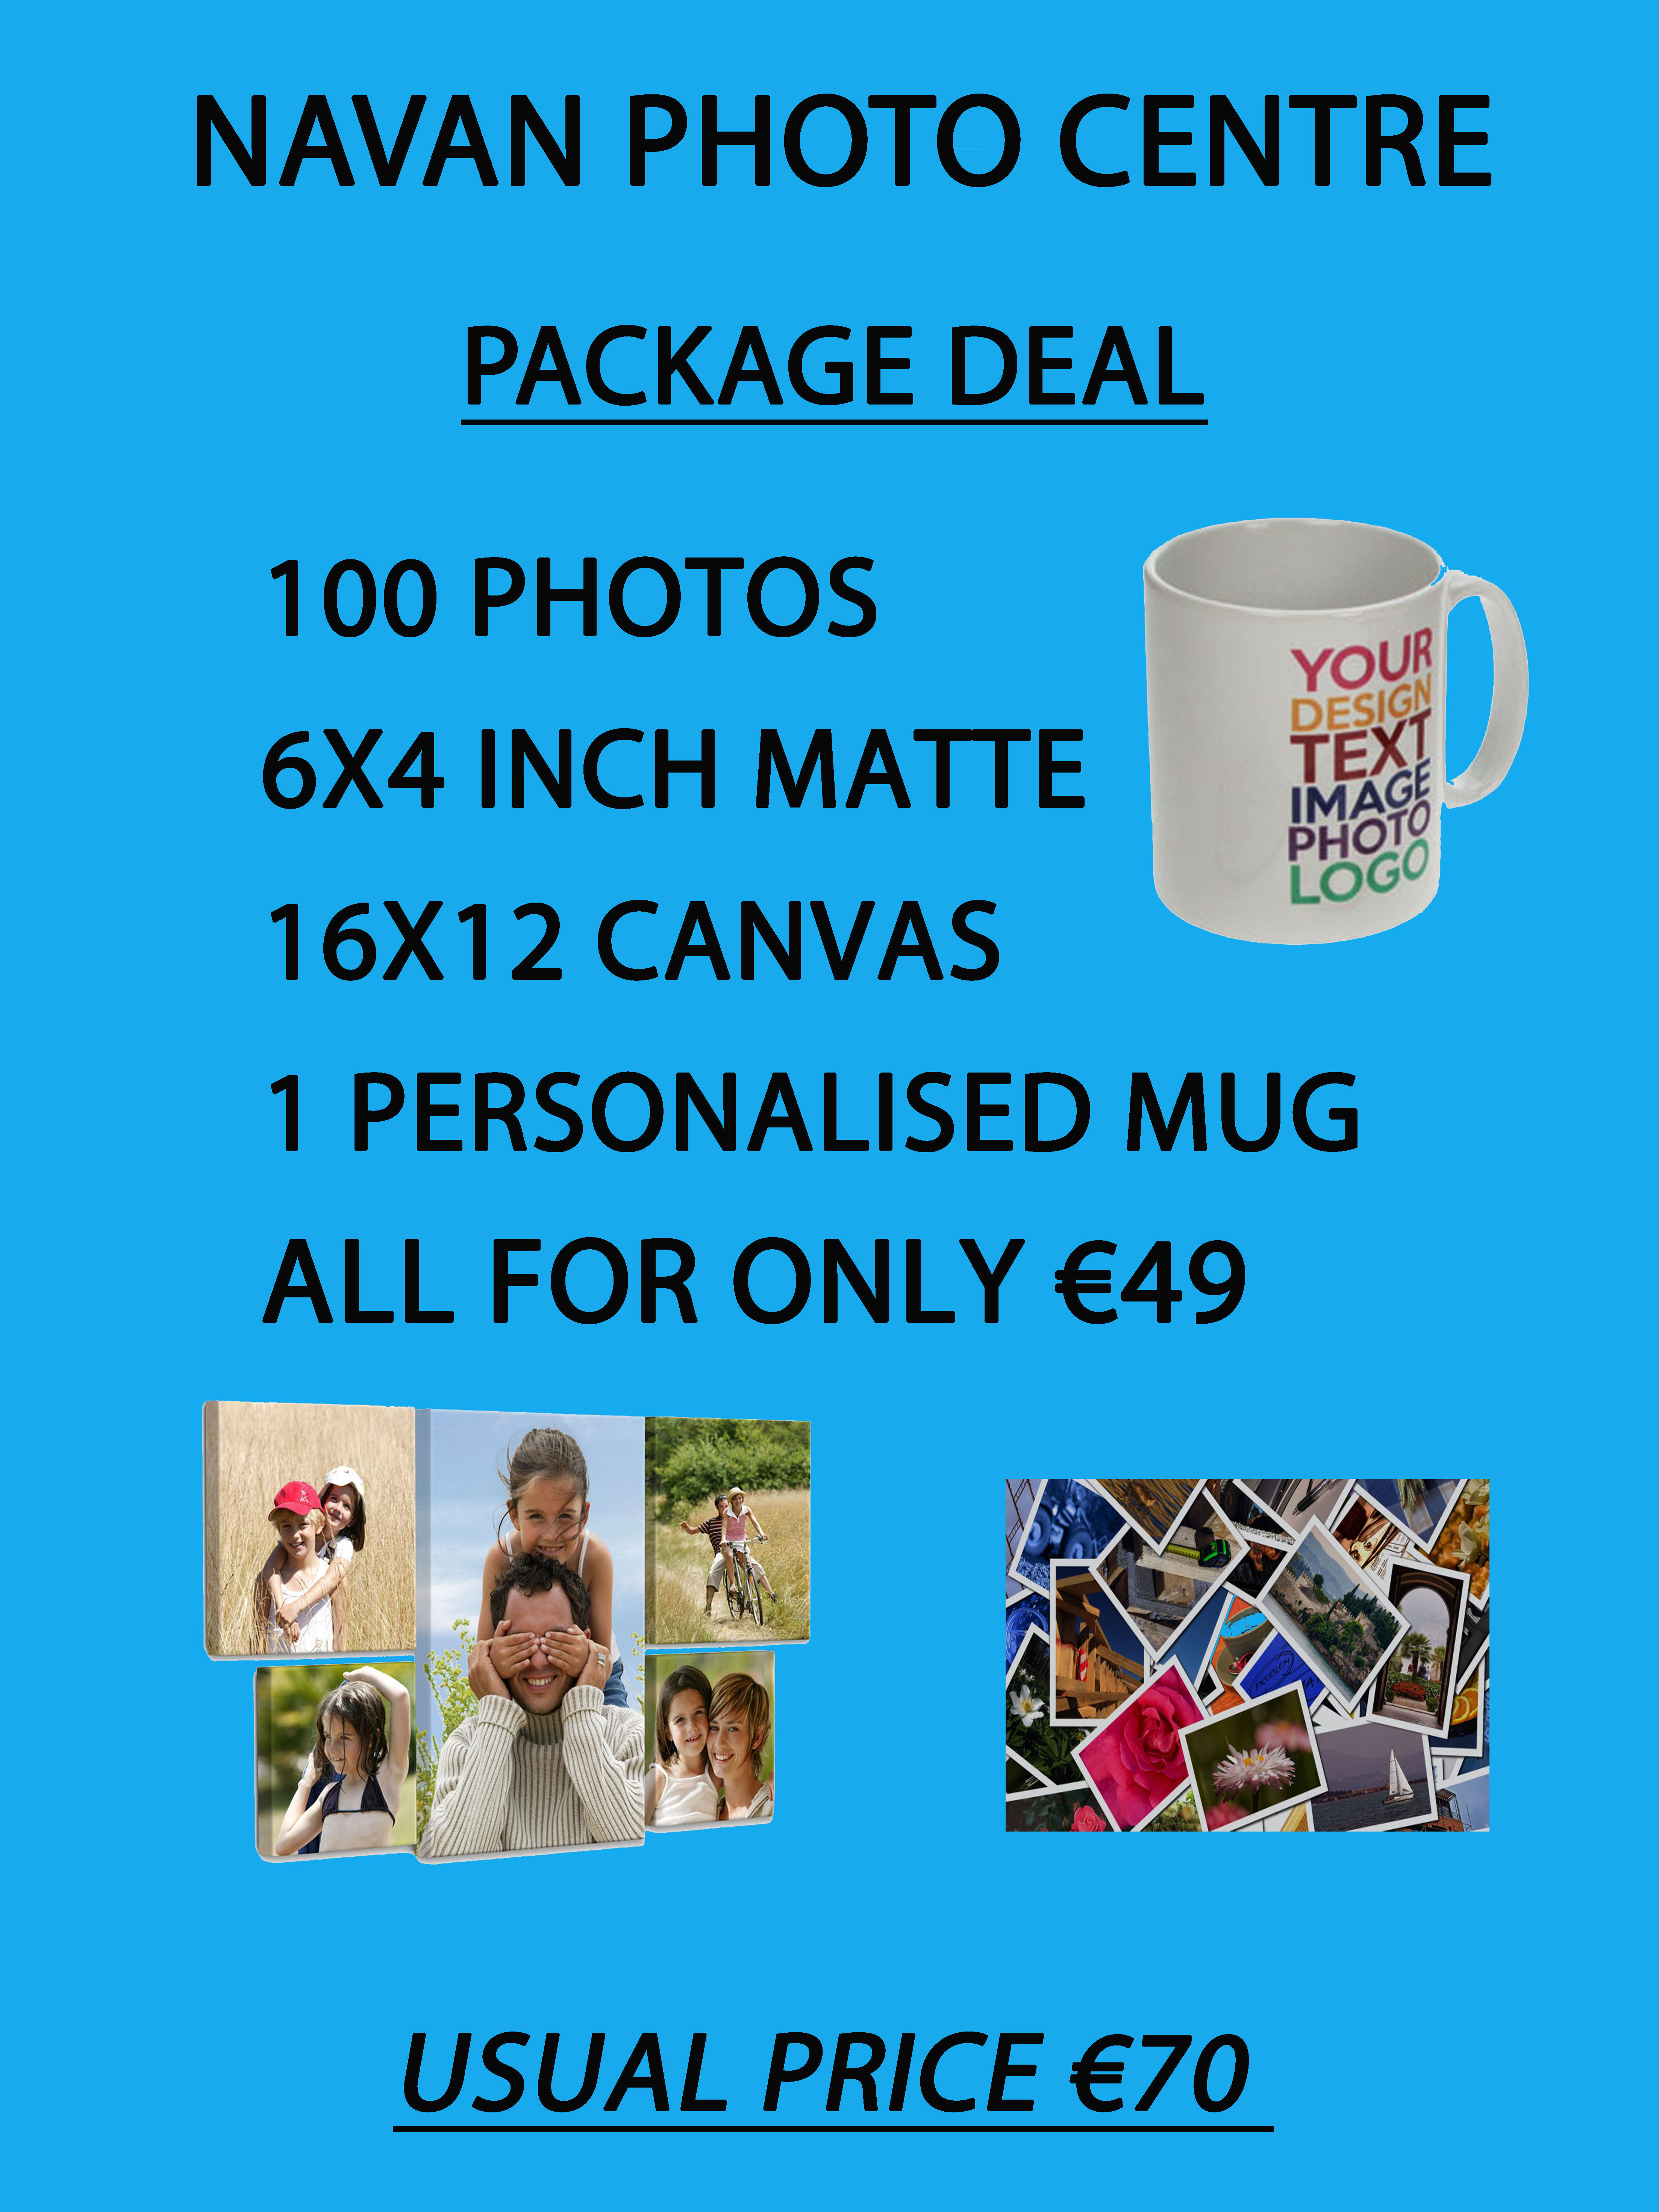 Package Deal at Navan Photo Centre!